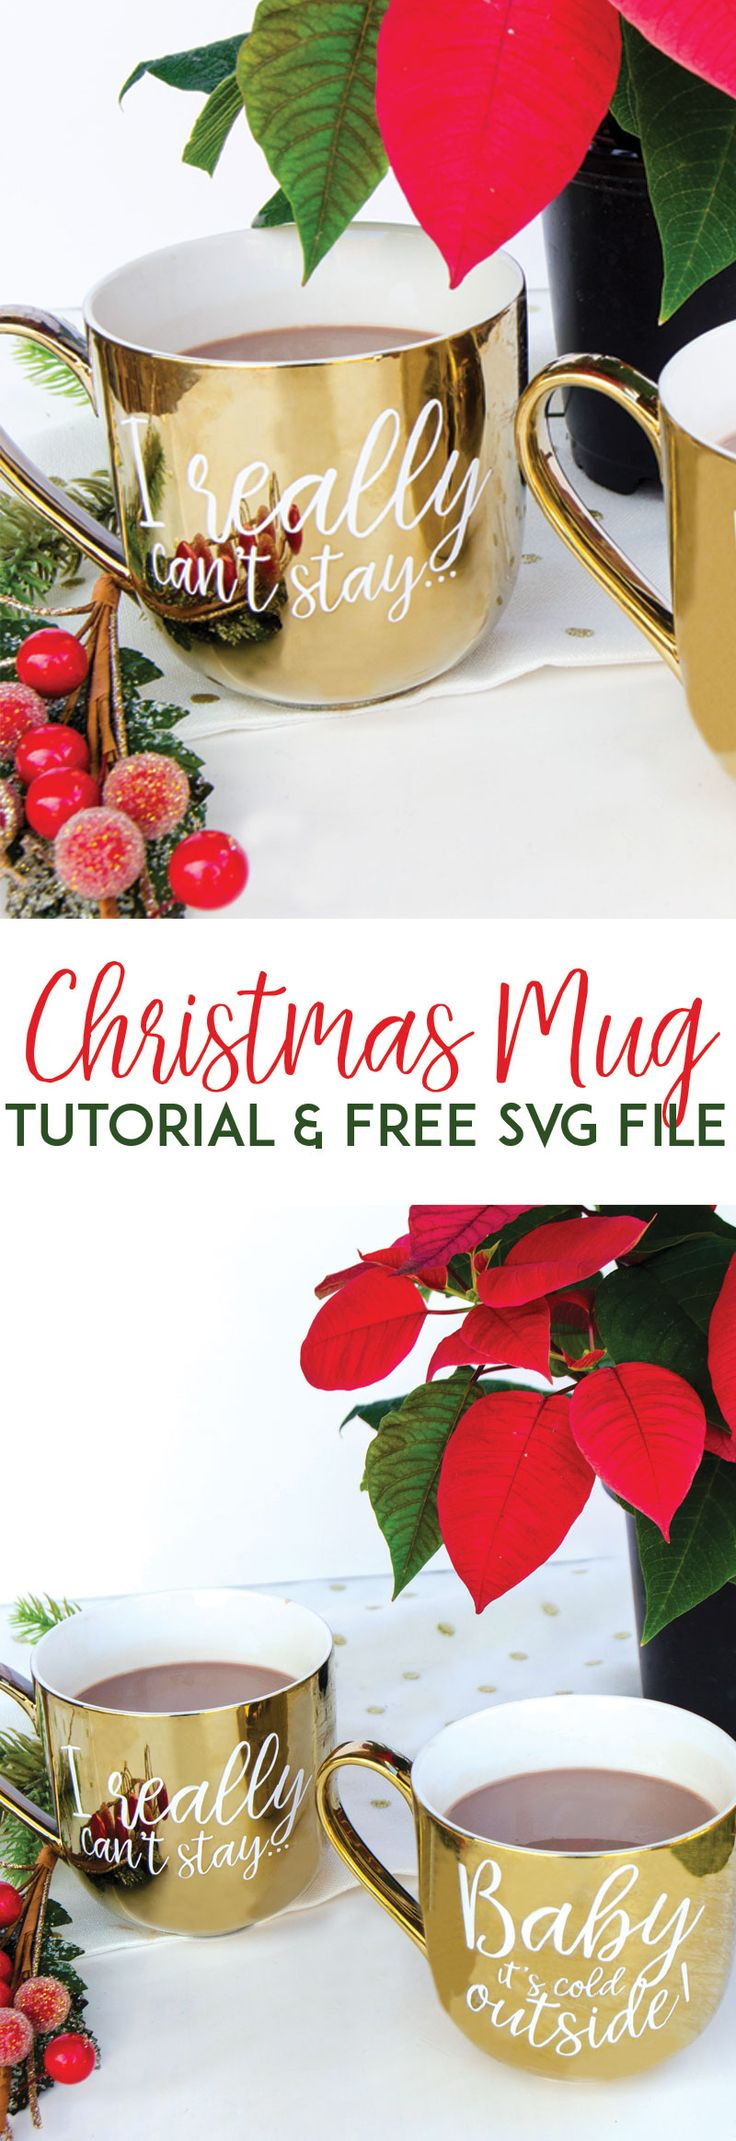 Christmas Mugs Gift Tutorial by MichaelsMakers Lindi Haws of Love The Day